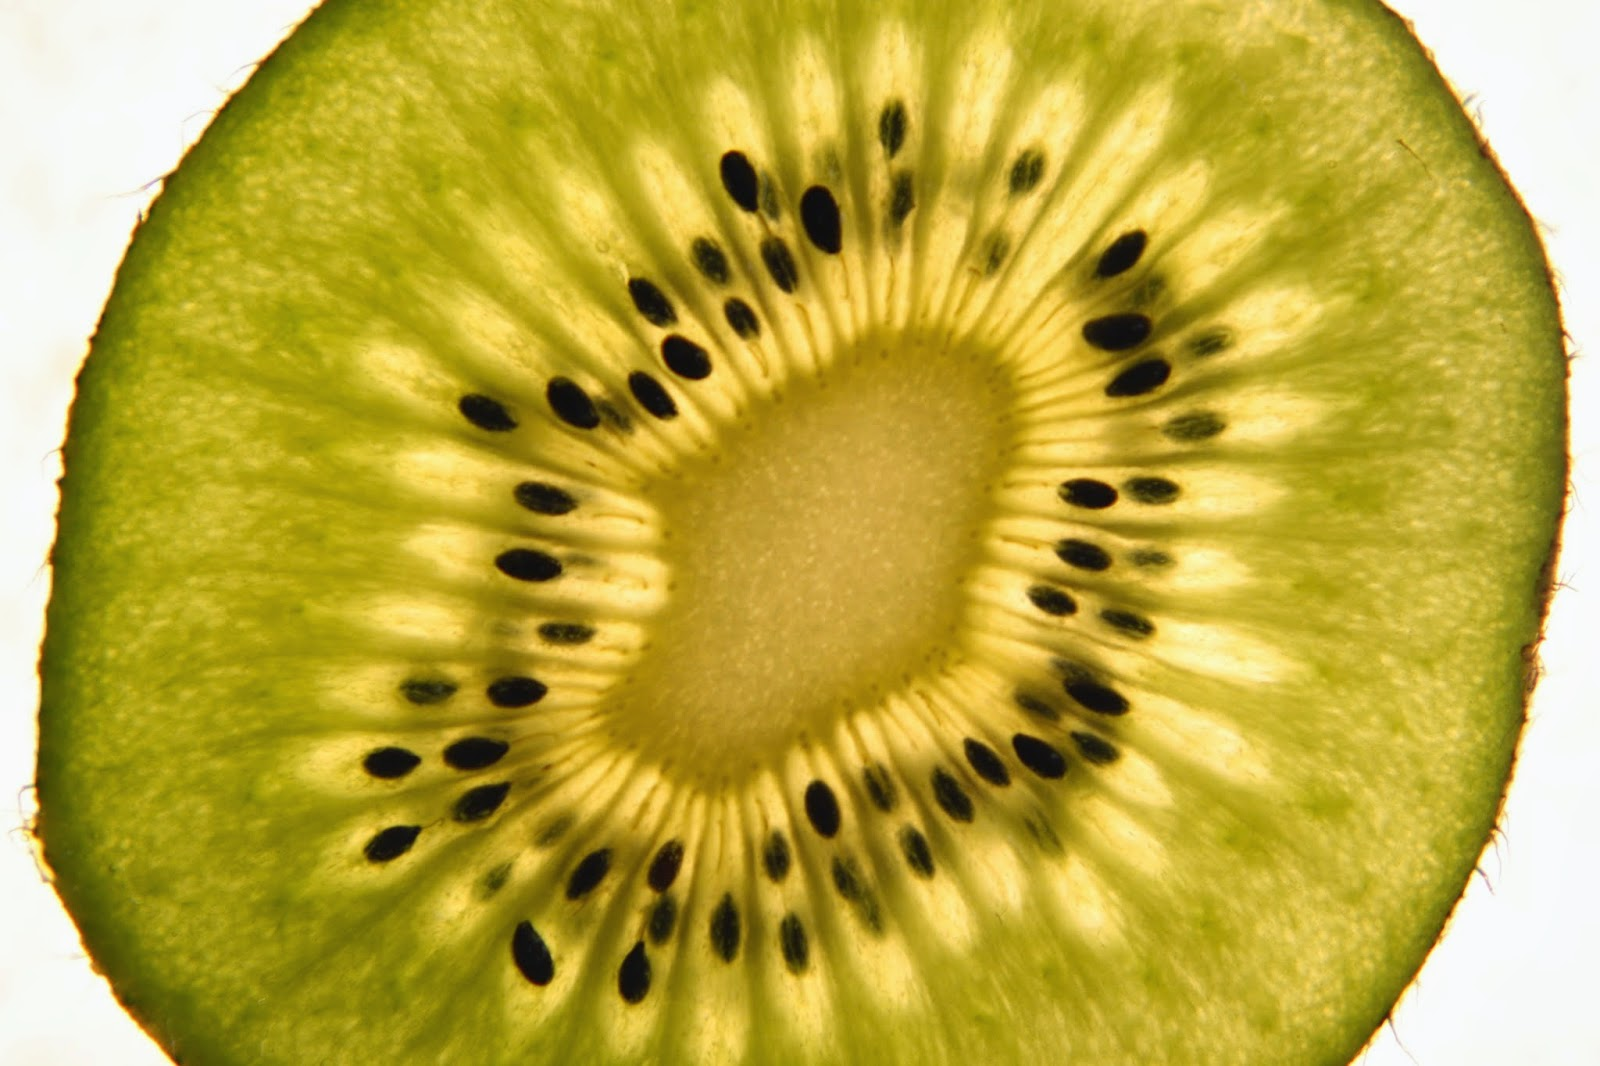 Kiwi Close-Up Photographed with 10x Close-Up Lens | Boost Your Photography